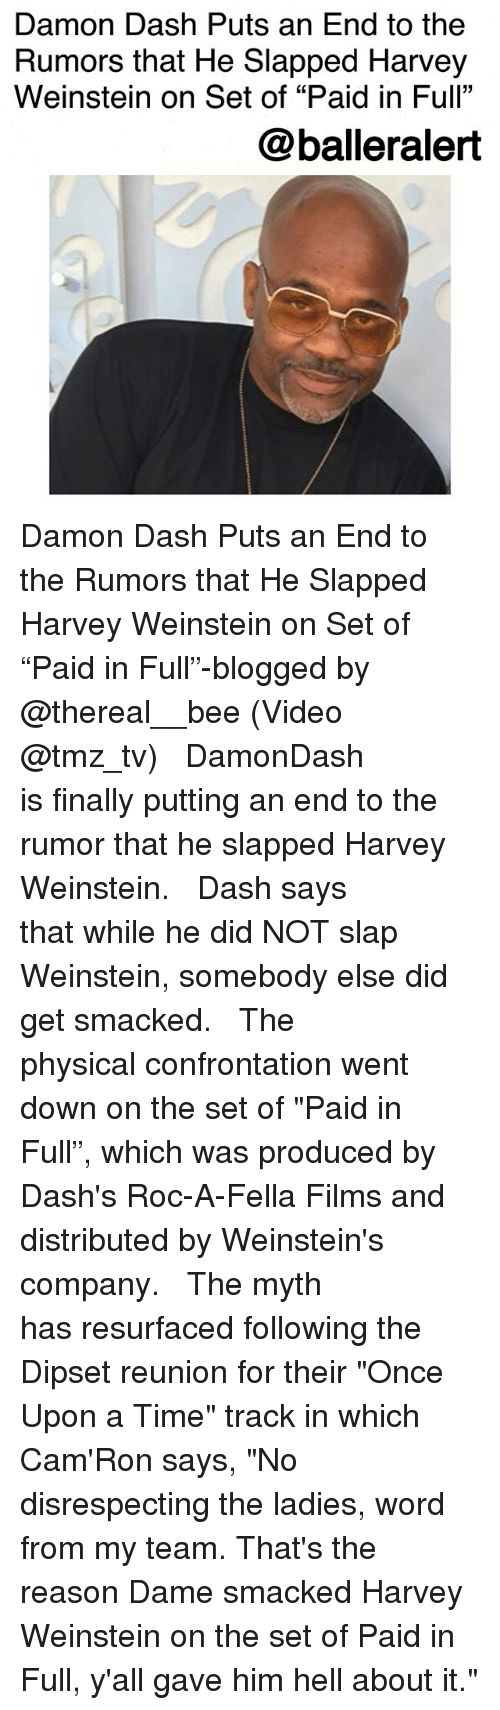 """paid in full: Damon Dash Puts an End to the  Rumors that He Slapped Harvey  Weinstein on Set of """"Paid in Full""""  @balleralert Damon Dash Puts an End to the Rumors that He Slapped Harvey Weinstein on Set of """"Paid in Full""""-blogged by @thereal__bee (Video @tmz_tv) ⠀⠀⠀⠀⠀⠀⠀⠀⠀ ⠀⠀ DamonDash is finally putting an end to the rumor that he slapped Harvey Weinstein. ⠀⠀⠀⠀⠀⠀⠀⠀⠀ ⠀⠀ Dash says that while he did NOT slap Weinstein, somebody else did get smacked. ⠀⠀⠀⠀⠀⠀⠀⠀⠀ ⠀⠀ The physical confrontation went down on the set of """"Paid in Full"""", which was produced by Dash's Roc-A-Fella Films and distributed by Weinstein's company. ⠀⠀⠀⠀⠀⠀⠀⠀⠀ ⠀⠀ The myth has resurfaced following the Dipset reunion for their """"Once Upon a Time"""" track in which Cam'Ron says, """"No disrespecting the ladies, word from my team. That's the reason Dame smacked Harvey Weinstein on the set of Paid in Full, y'all gave him hell about it."""""""